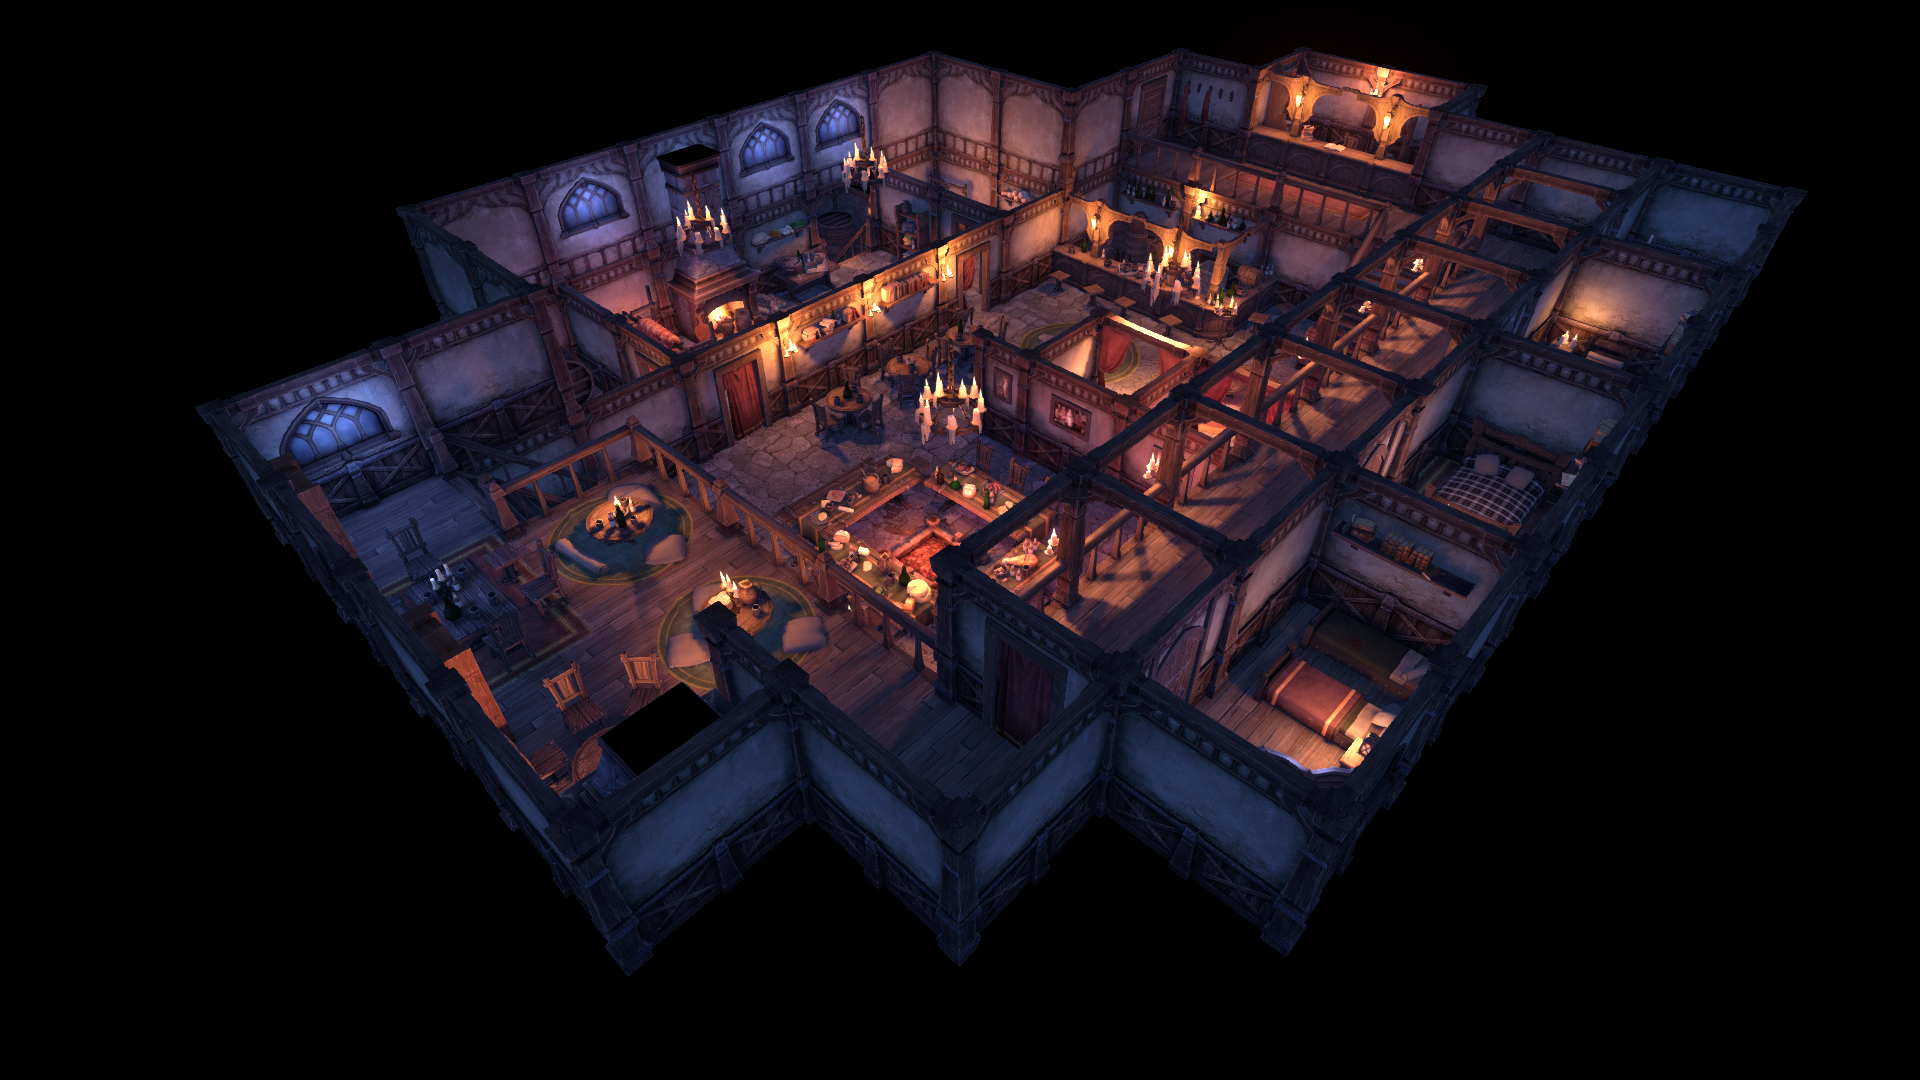 Medieval Inn And Tavern By Ennelia Studio In Environments